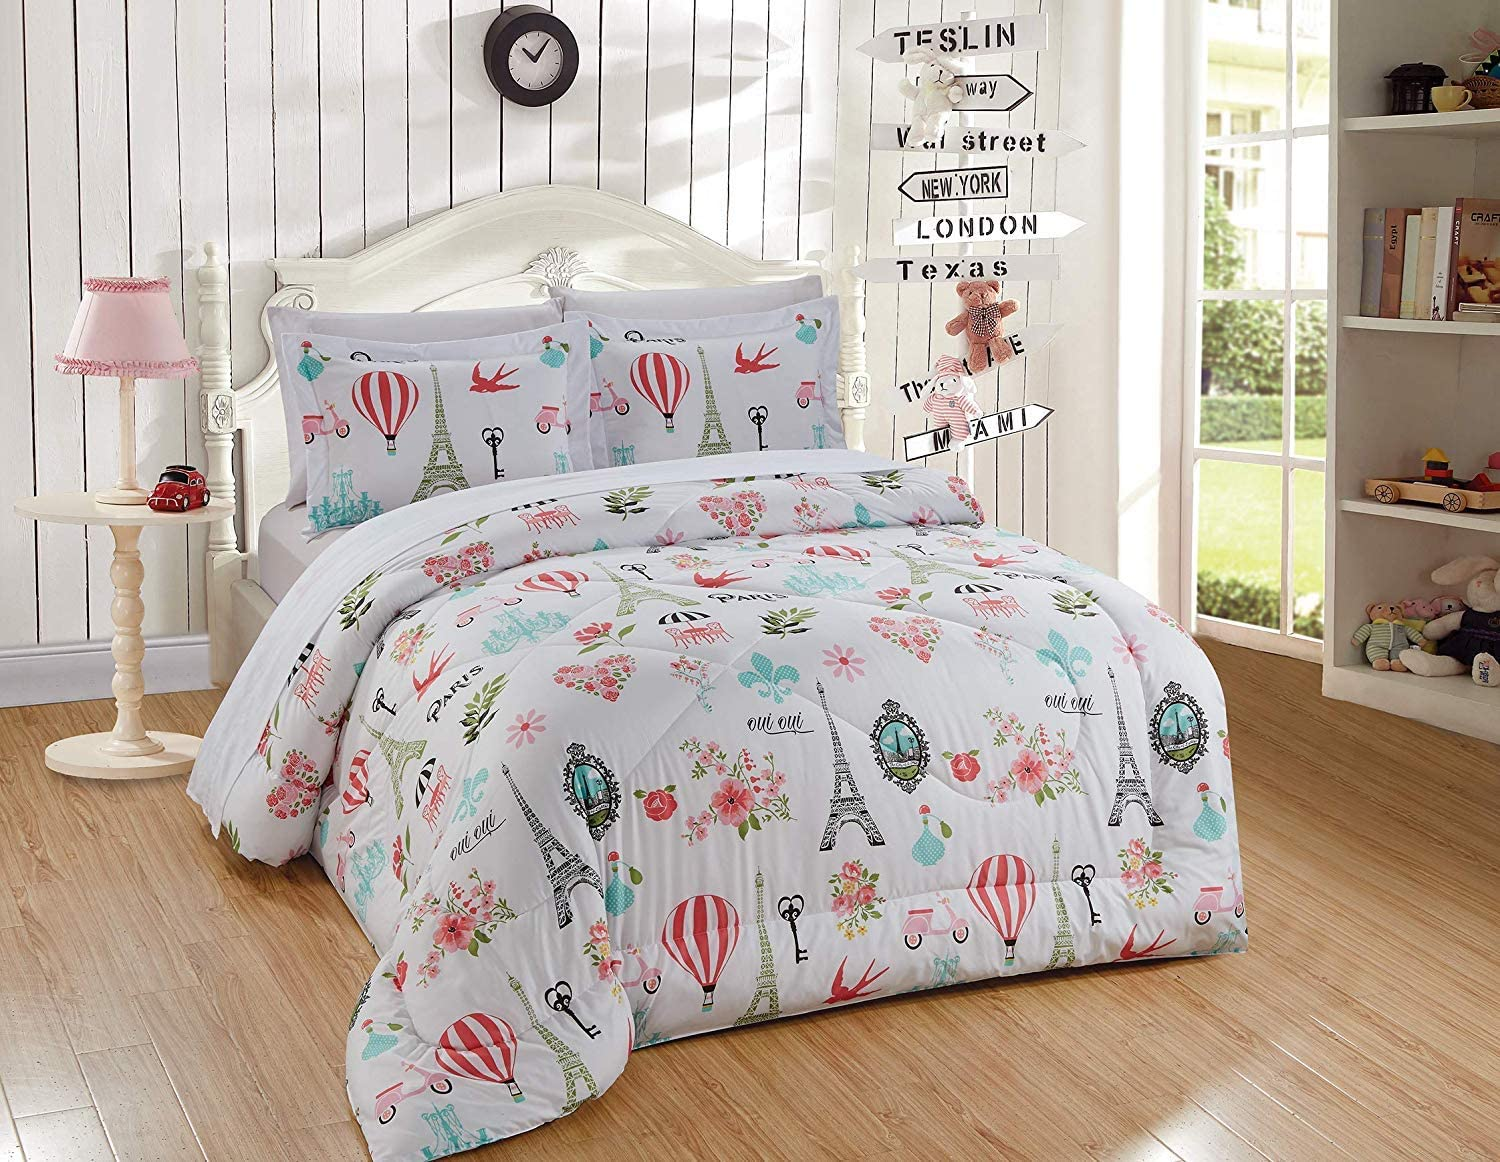 Better Home Style Pink White Blue Green Floral Paris Eiffel Tower Bonjour Flowers Design 7 Piece Comforter Bedding Set Bed in a Bag with Complete Sheet Set # Paris Balloon (Queen Size)